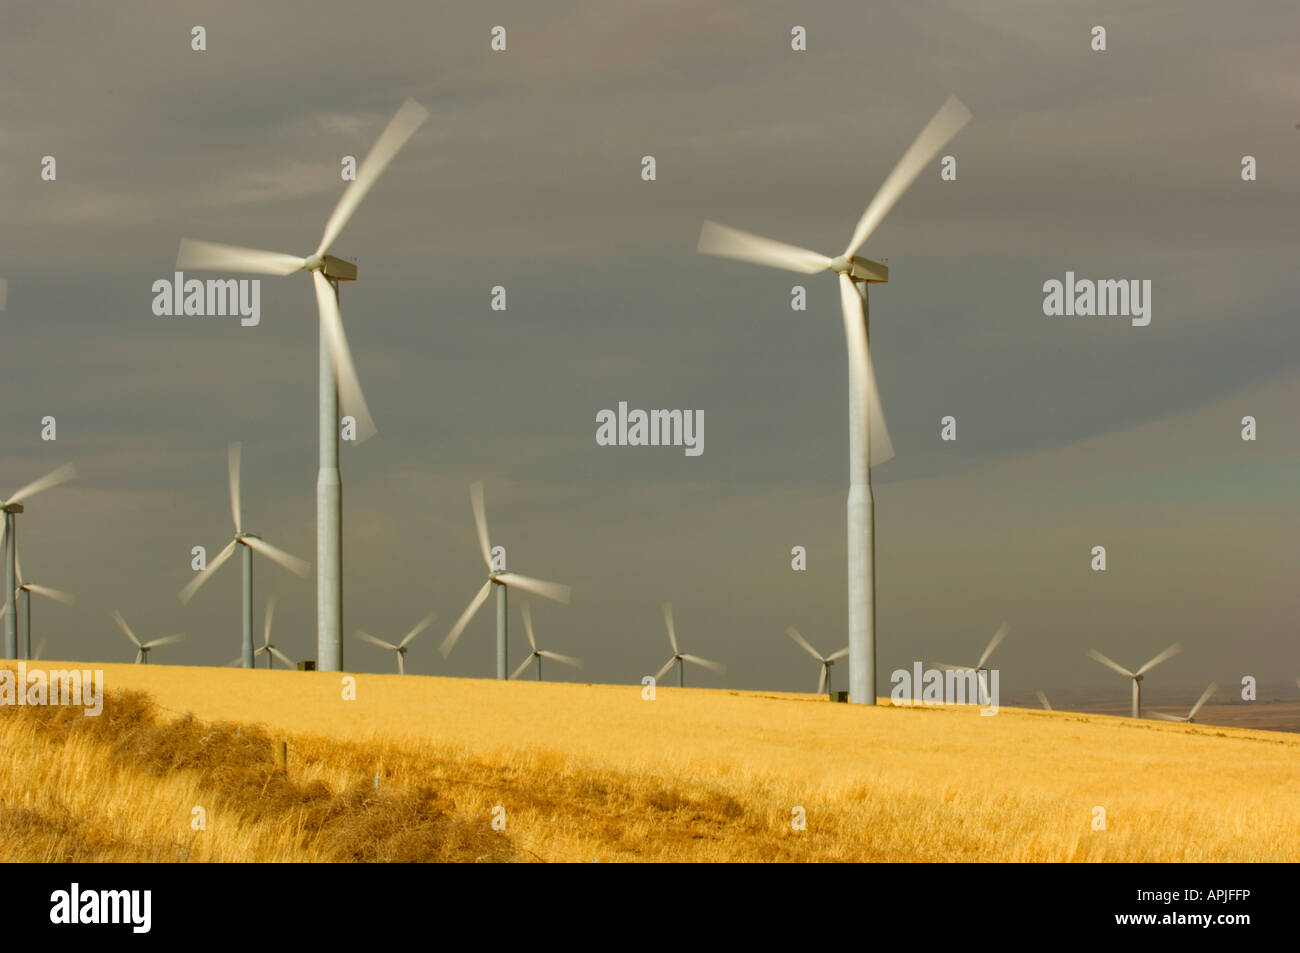 Propellers of wind turbines spin in the wind as they generate electricity in southeast Washington State - Stock Image